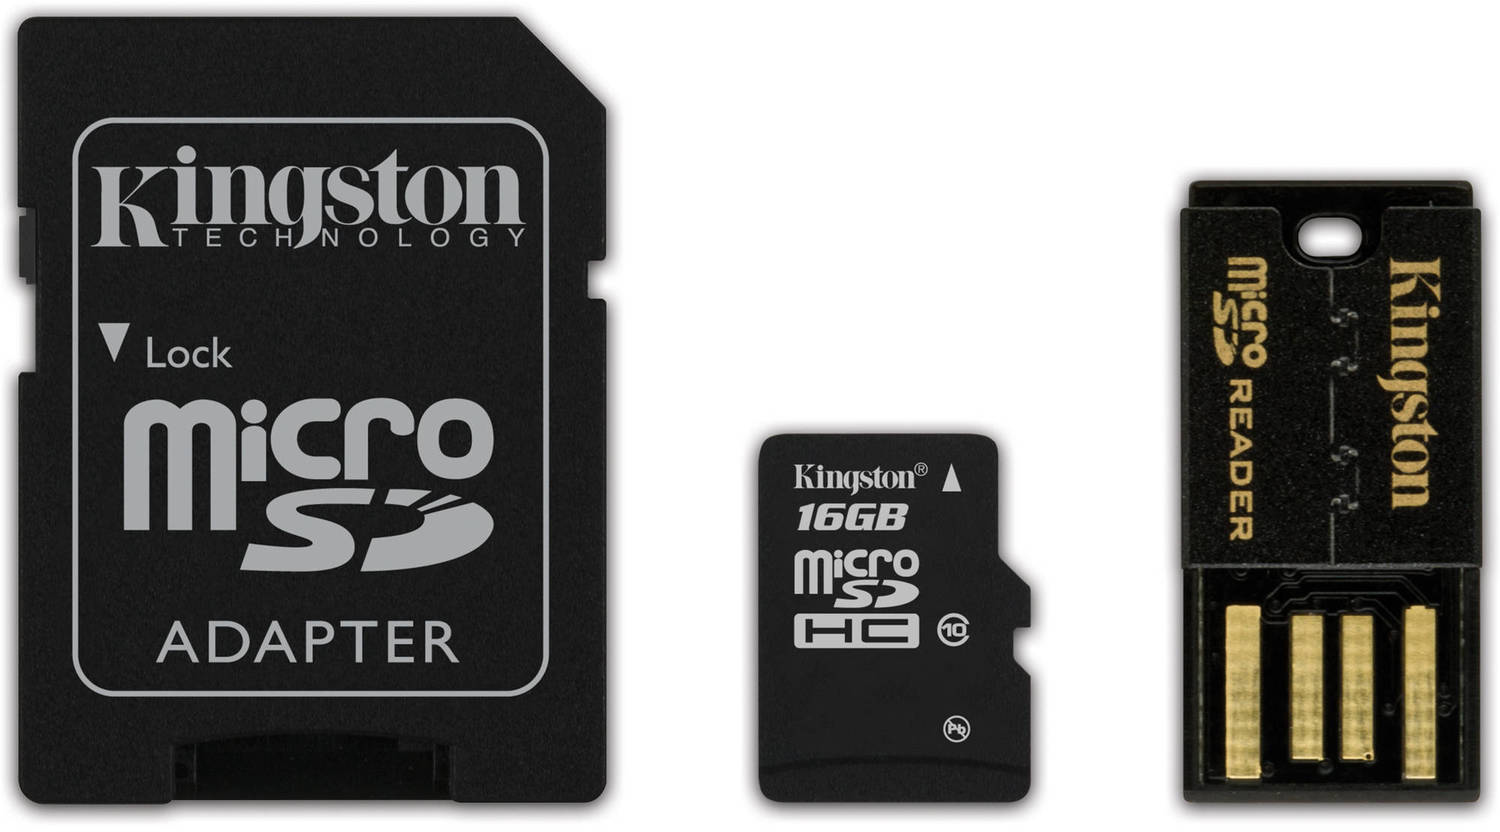 Kingston microSDHC 16Gb Class 10 U1 UHS-I (MBLY10G2/16GB) - карта памяти с адаптером и USB-картридером microsdhc kingston 4gb class 4 sdc4 4gbsp